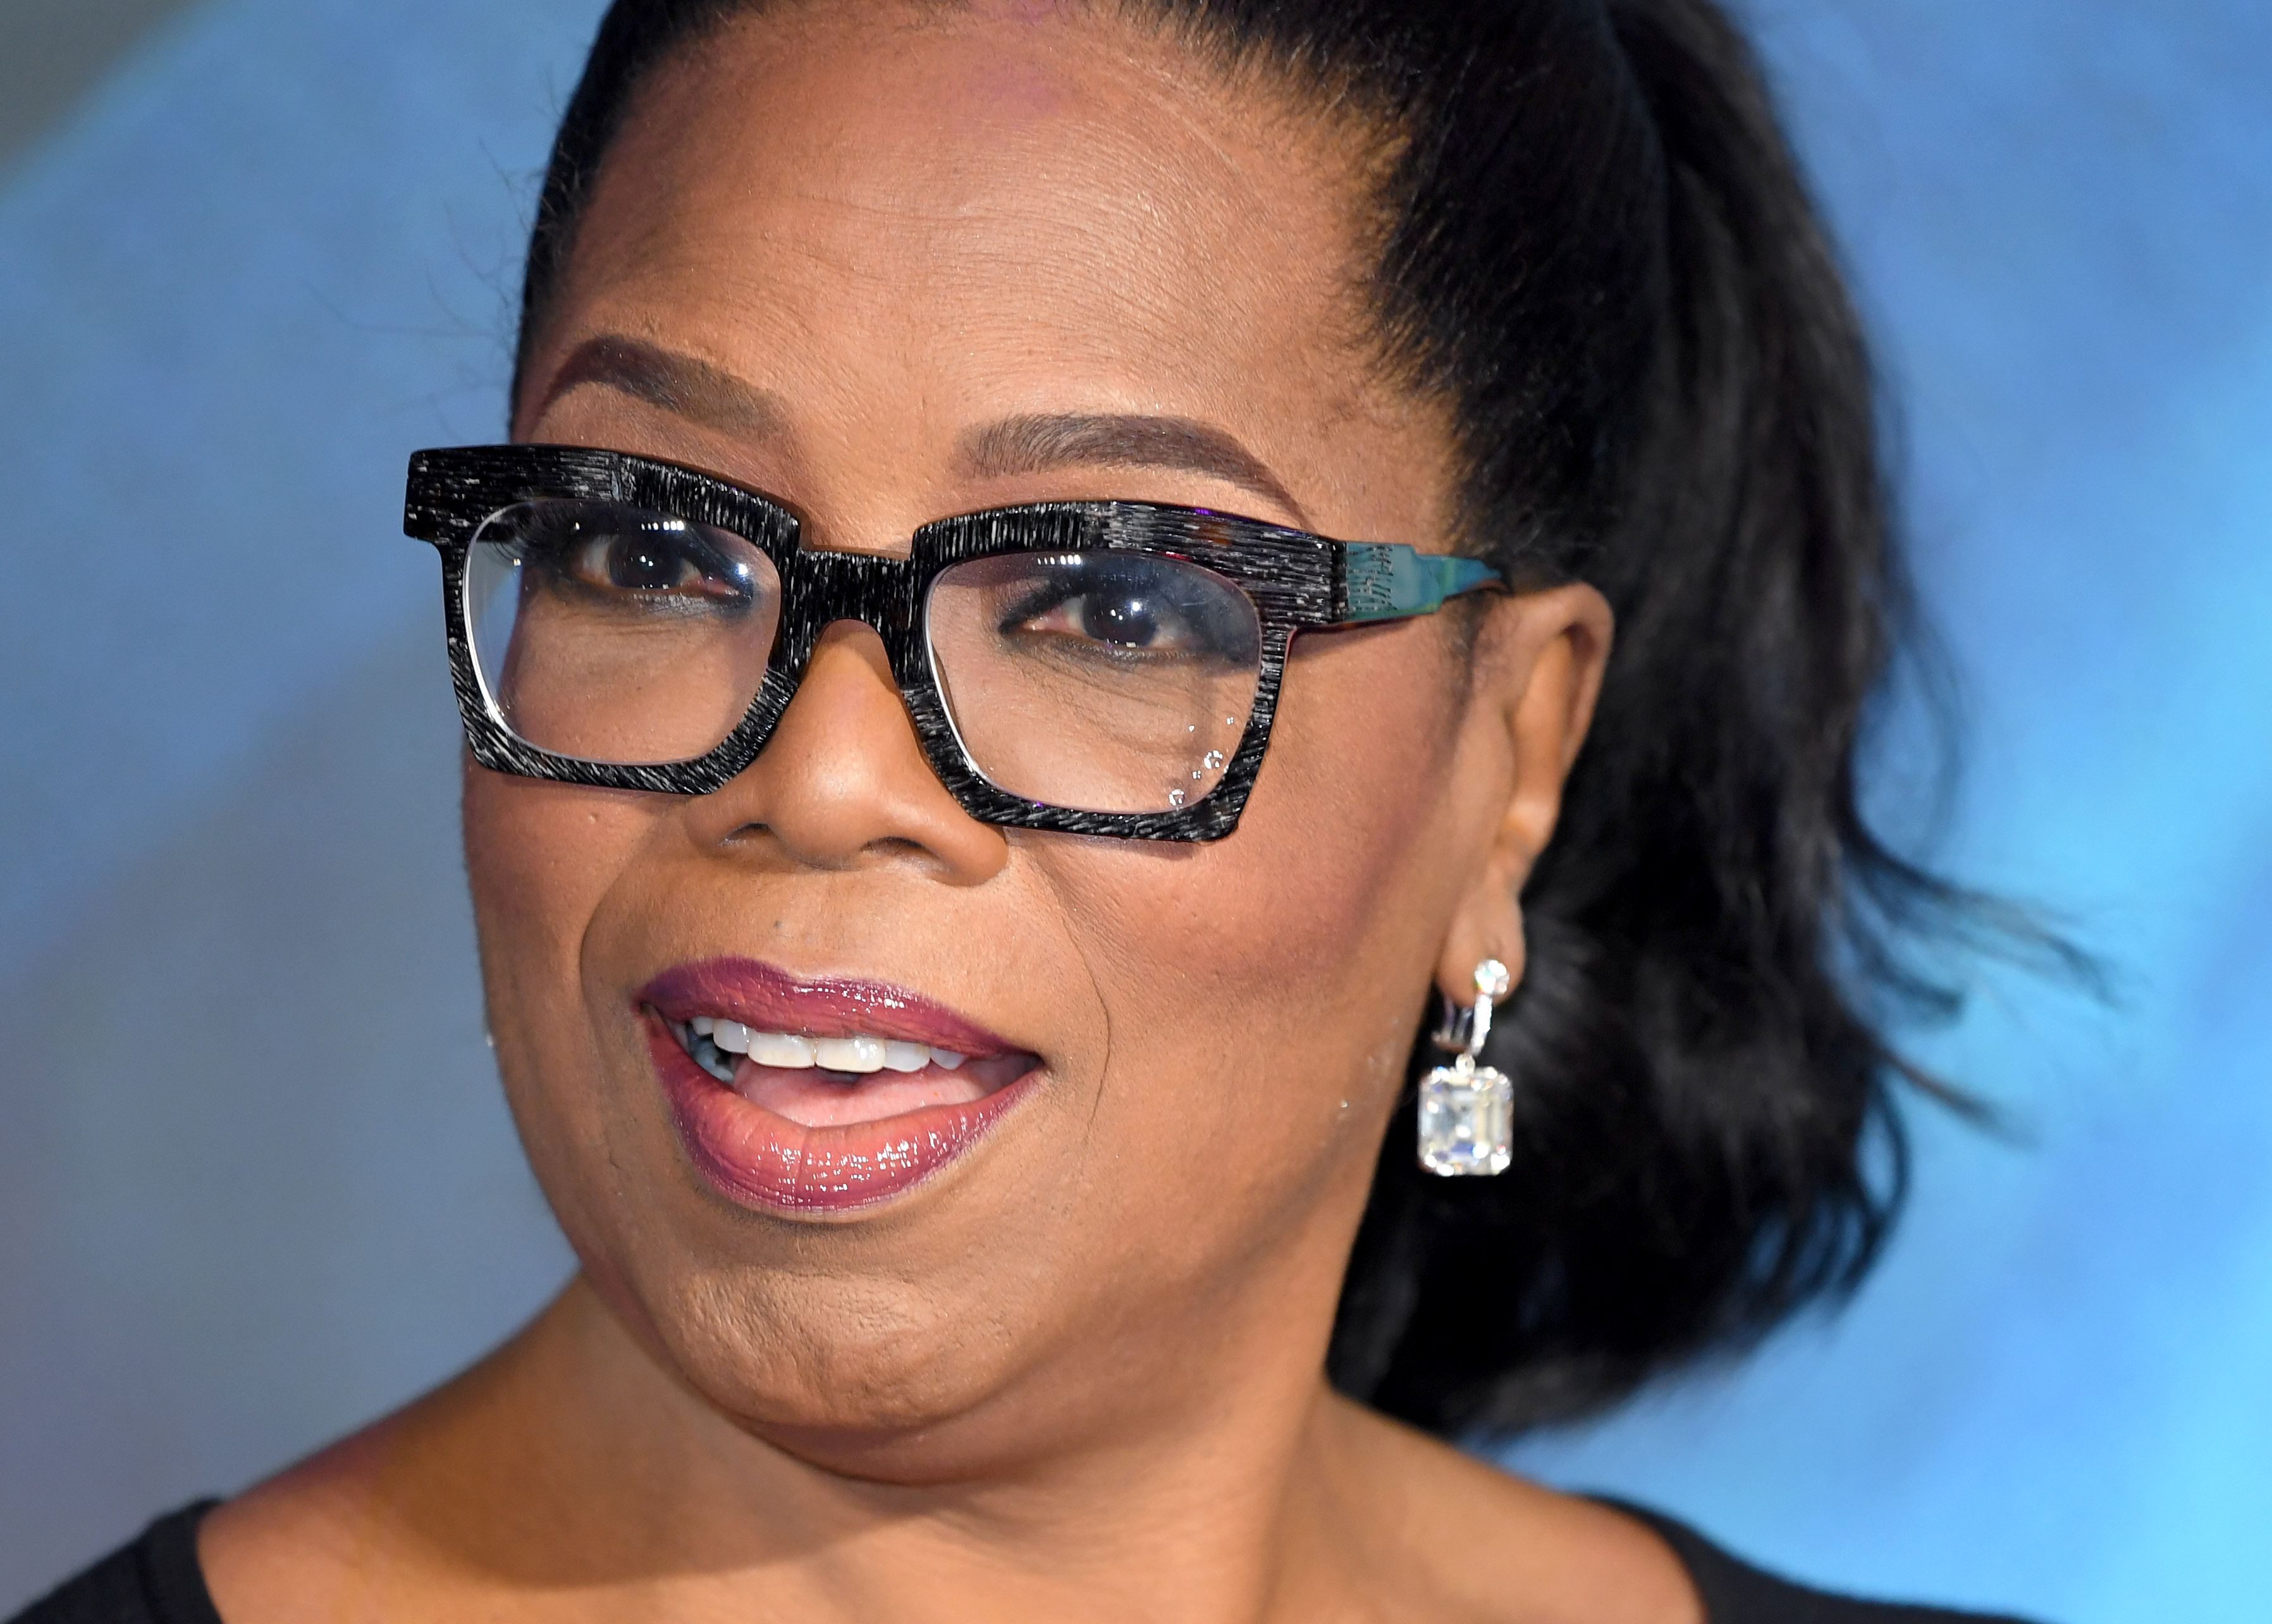 LONDON, ENGLAND - MARCH 13:  Oprah Winfrey attends the European Premiere of 'A Wrinkle In Time' at BFI IMAX on March 13, 2018 in London, England.  (Photo by Karwai Tang/WireImage)